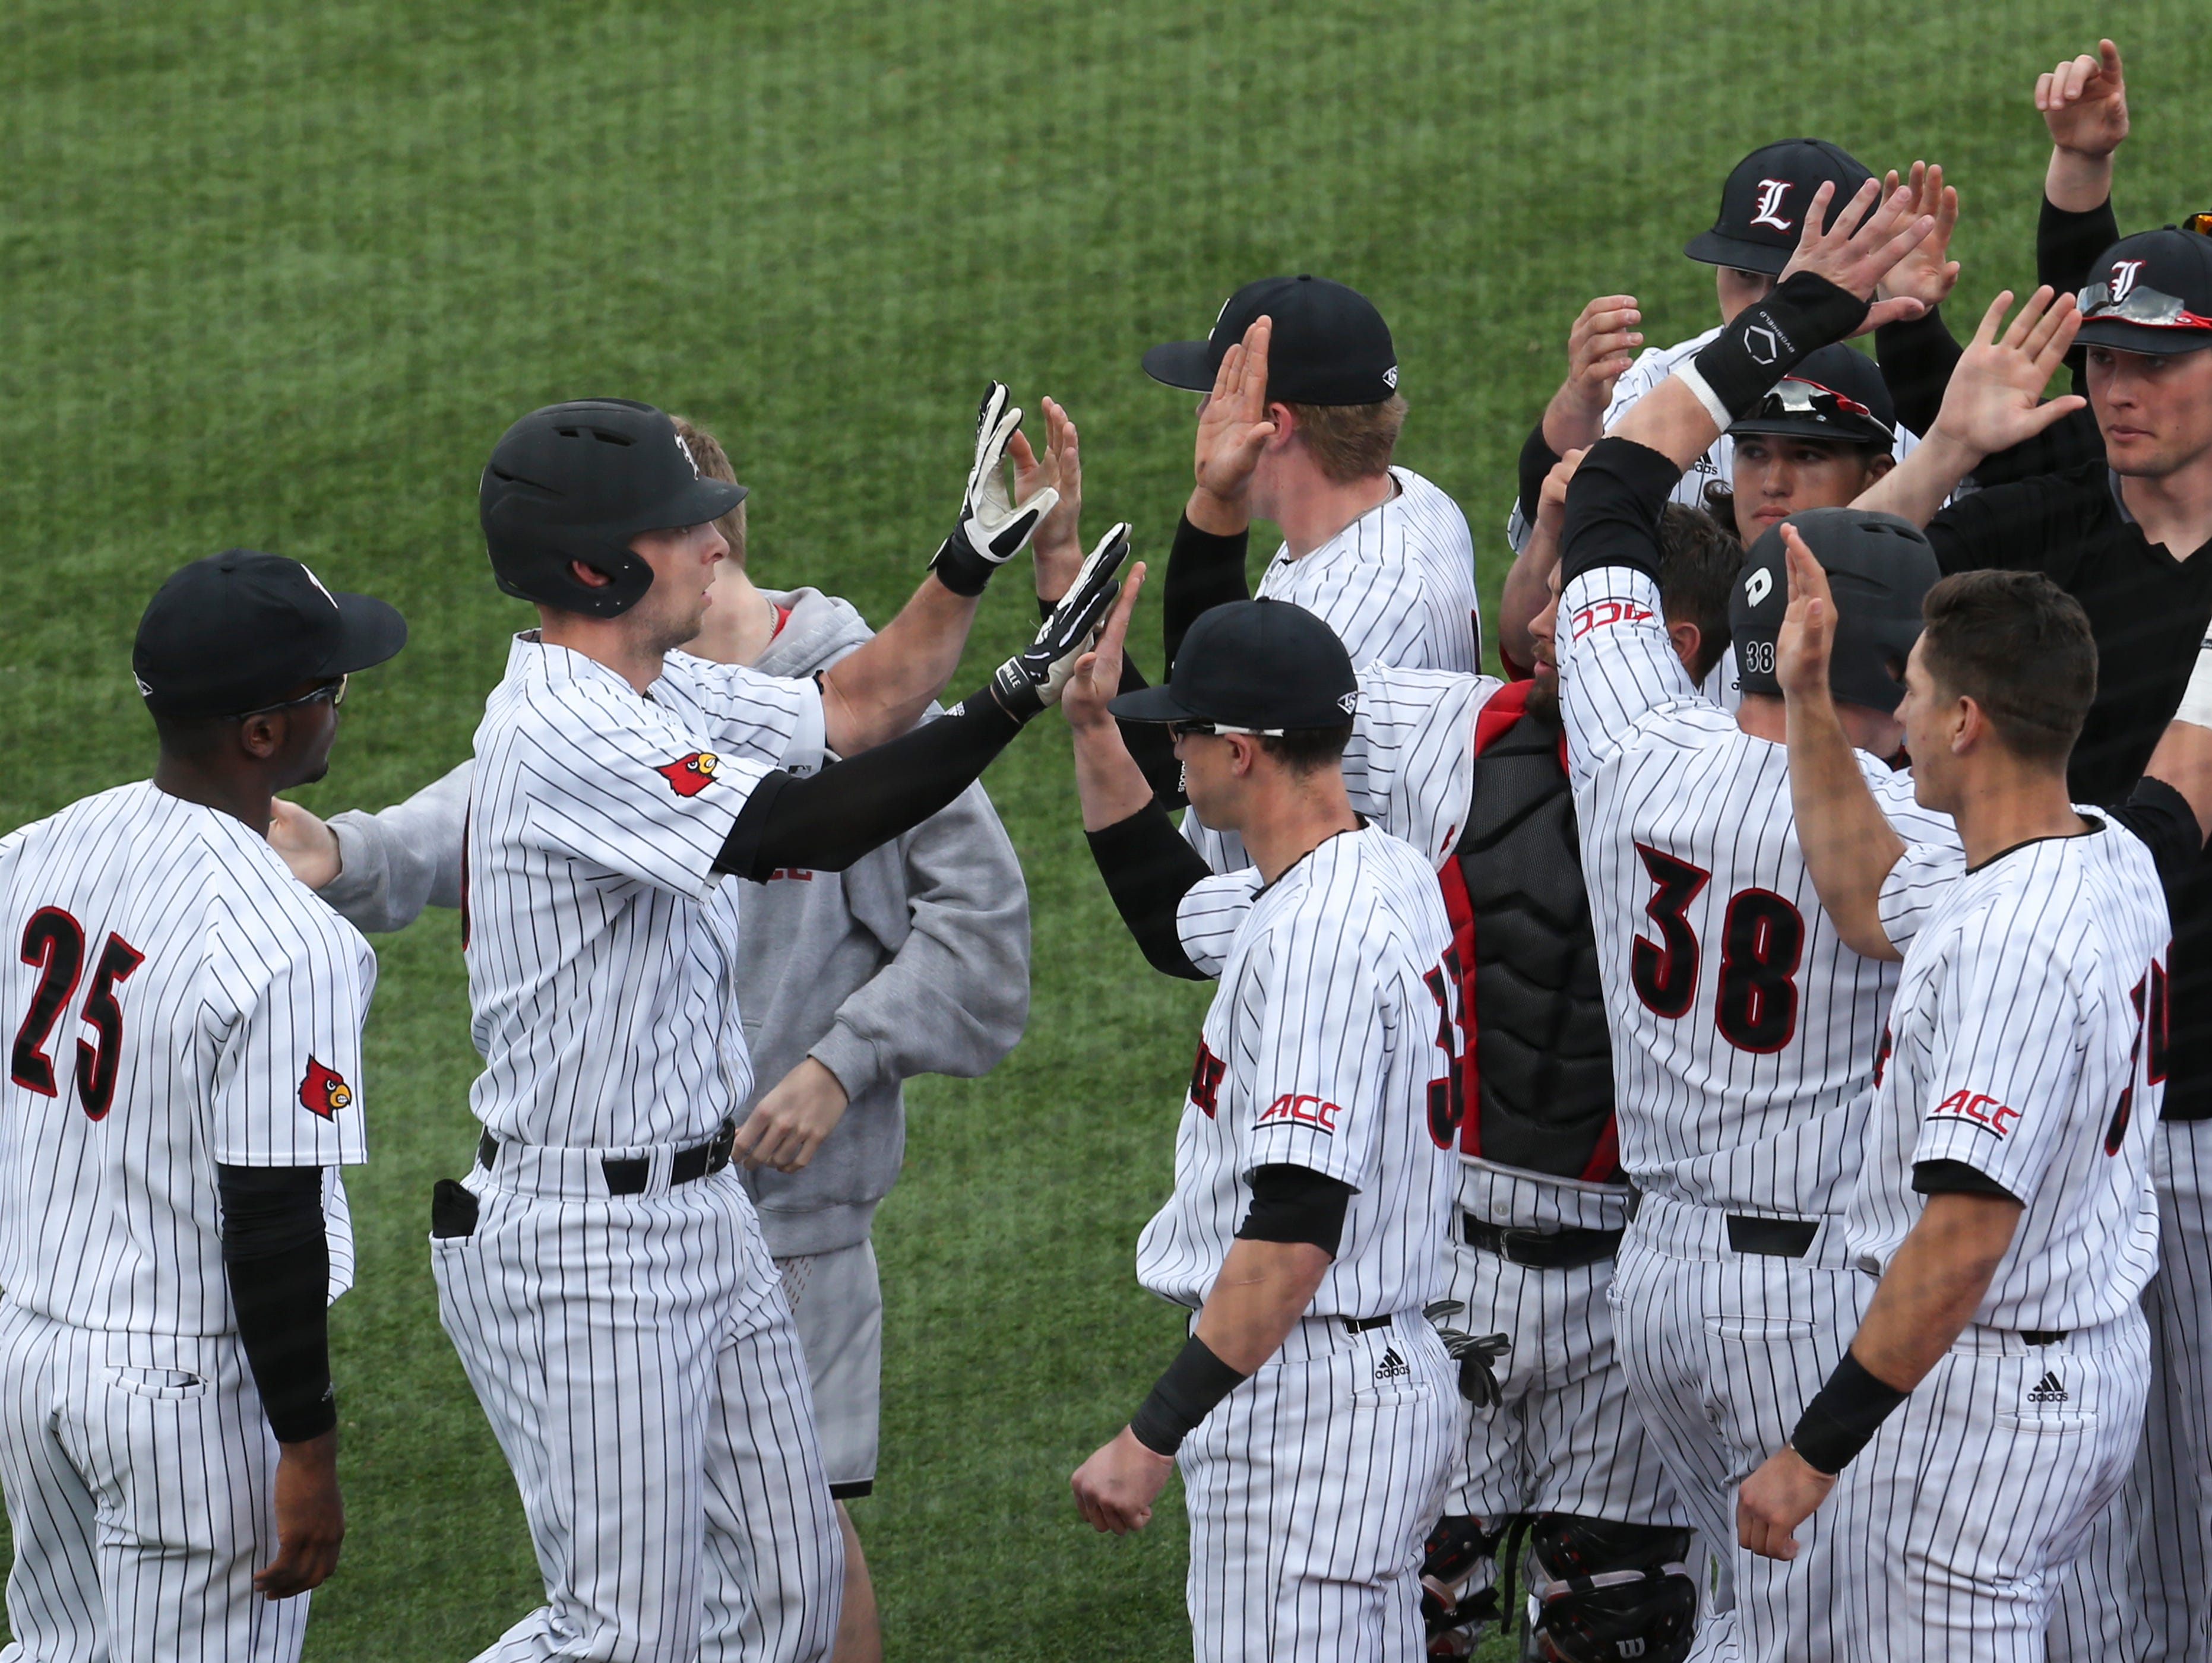 U of L's Drew Ellis (10), left, was greeted by teammates after hitting a home run against Eastern Kentucky at Jim Patterson Stadium. Feb. 22, 2017